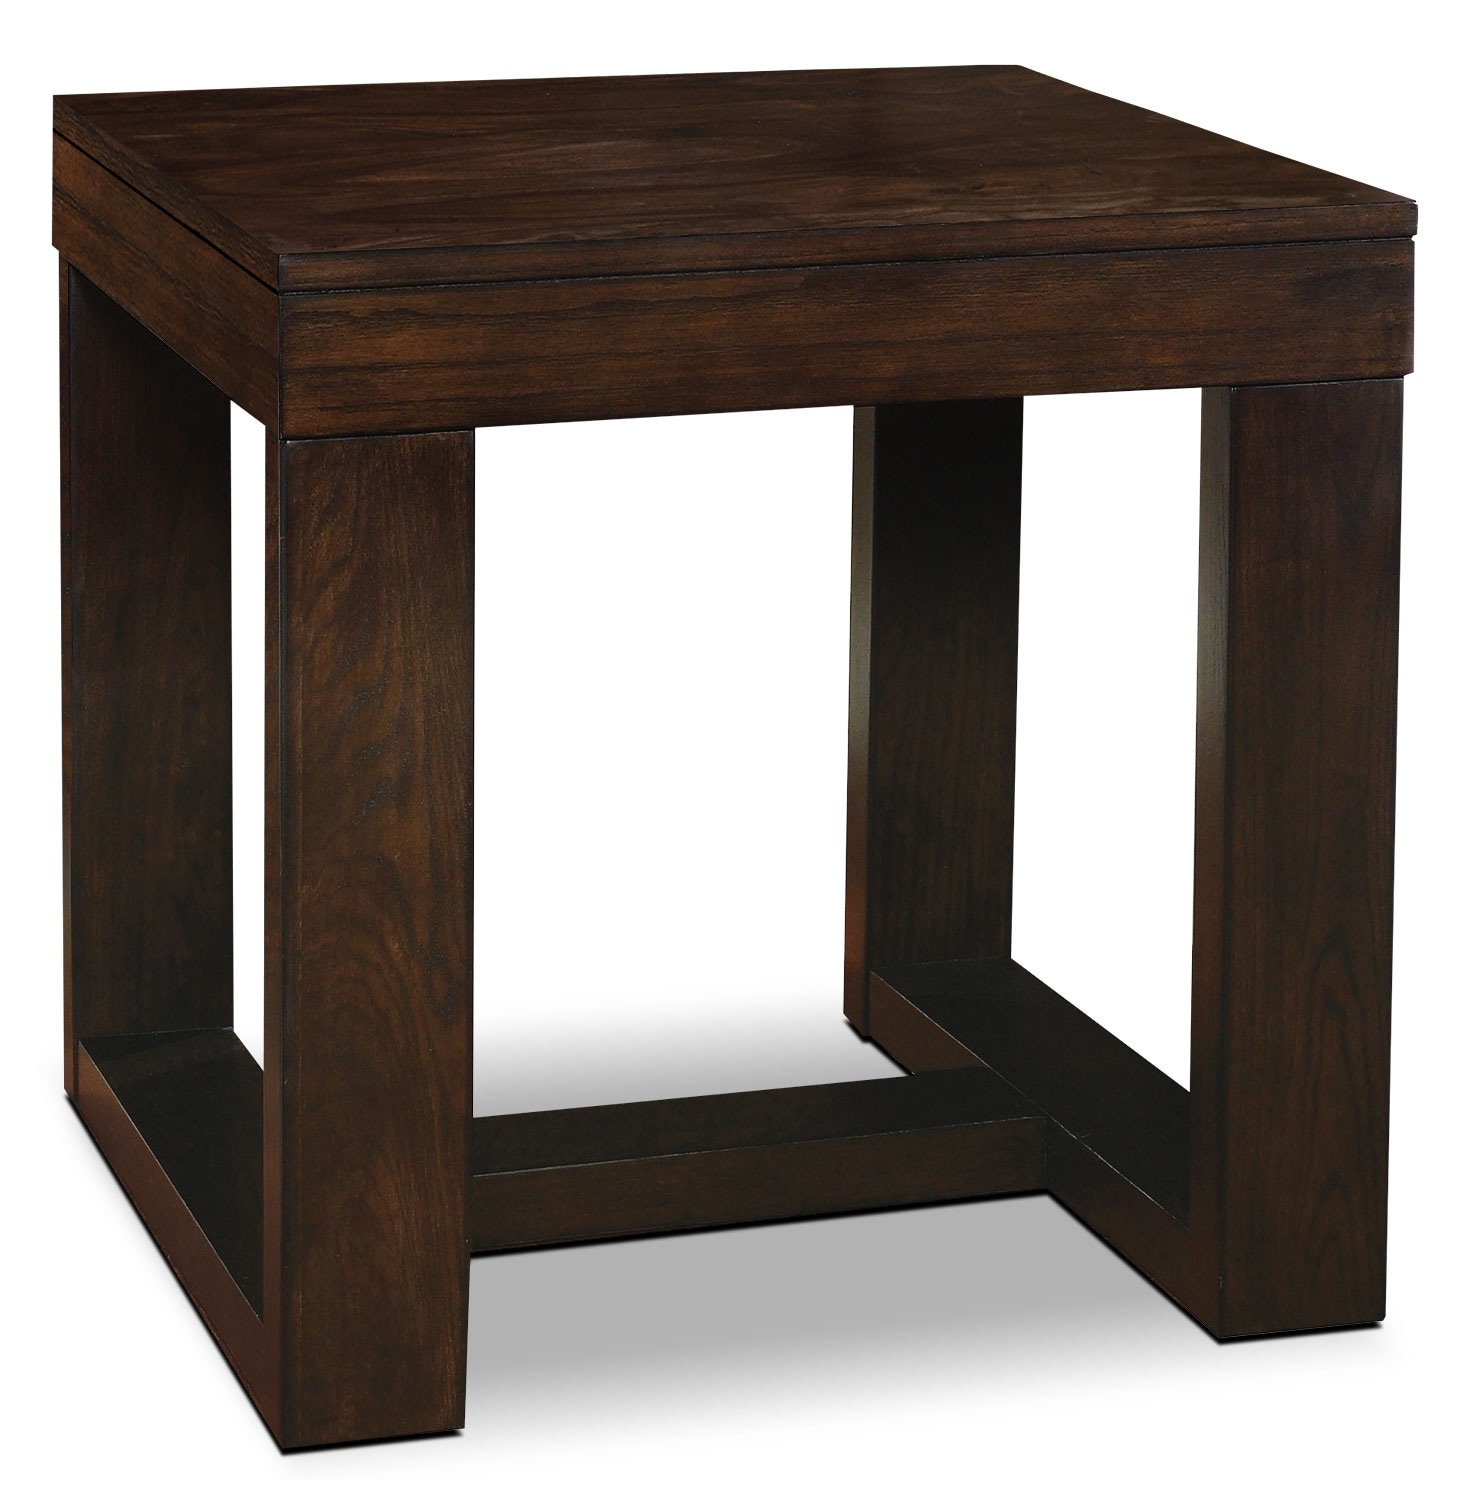 Pick Up End Table Lamps For Living Room Kmart: Watson End Table